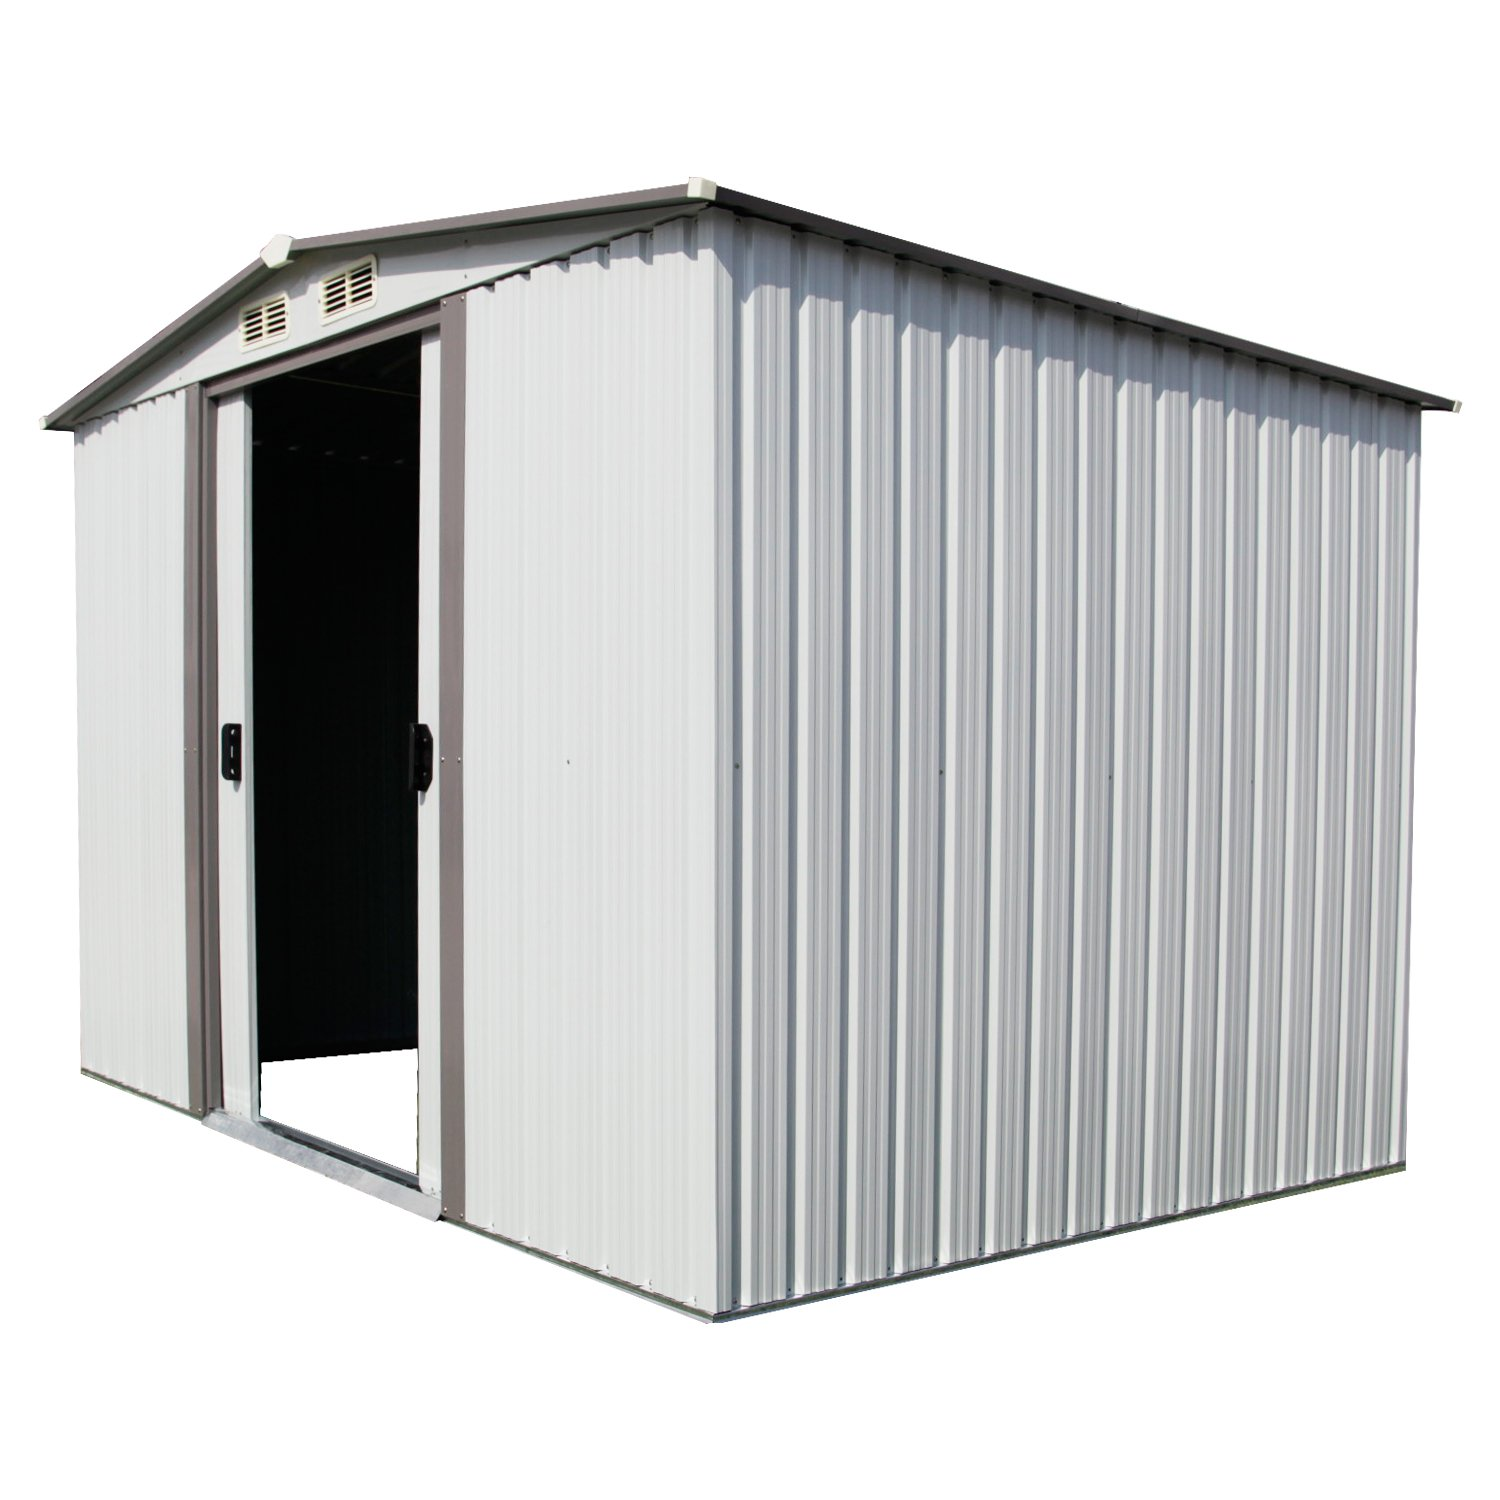 Kinbor New 8' x 6' Outdoor White Steel Garden Storage Utility Tool Shed Backyard Lawn Building Garage w/Sliding Door by Kinbor (Image #3)